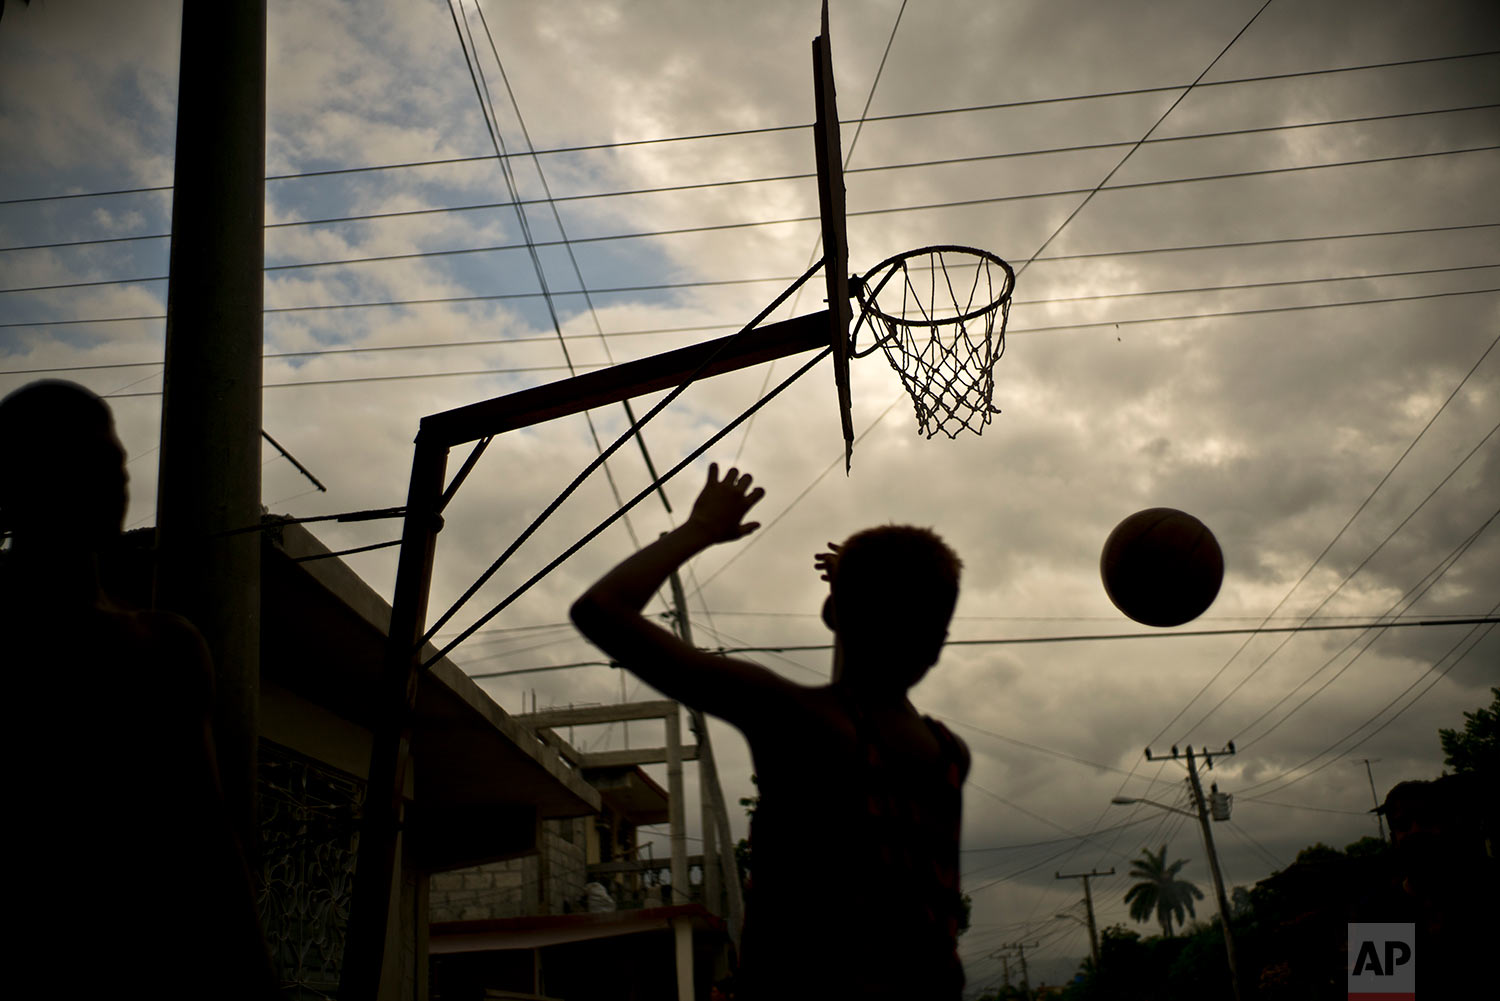 A youth plays basketball in Guantanamo, Cuba, July 24, 2018. Boys on summer break from school often meet at parks for a game of hoops.